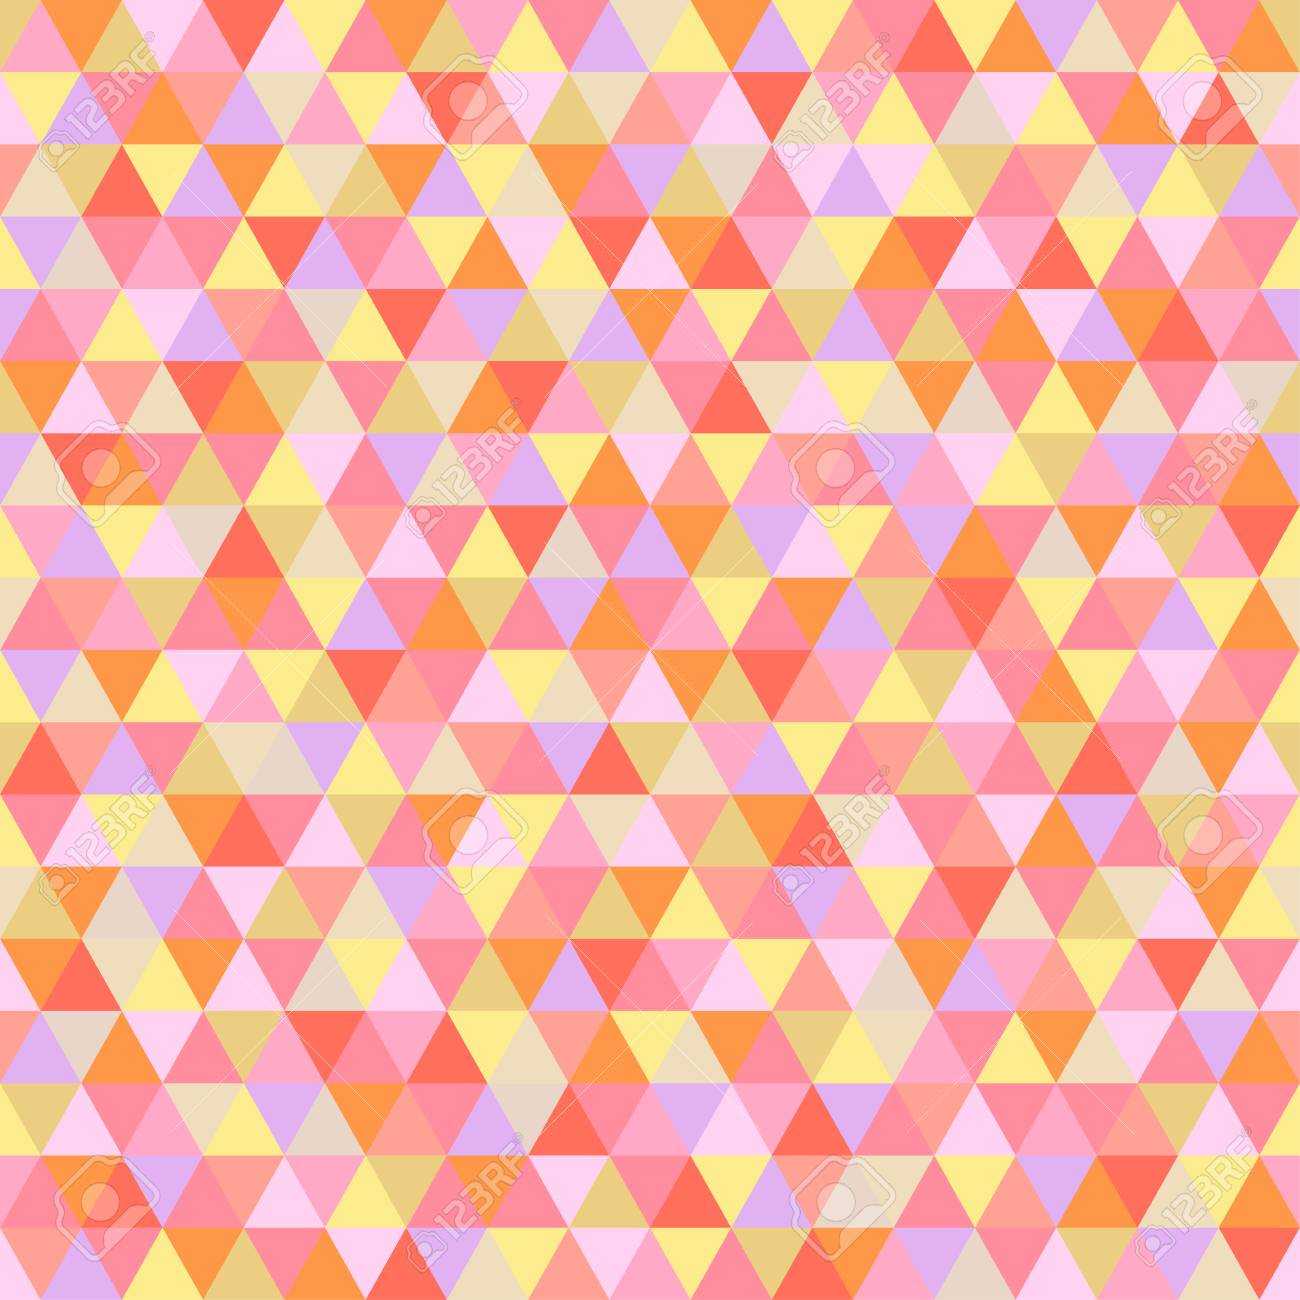 95888861 seamless triangle pattern abstract geometric wallpaper of the surface cute background bright colors